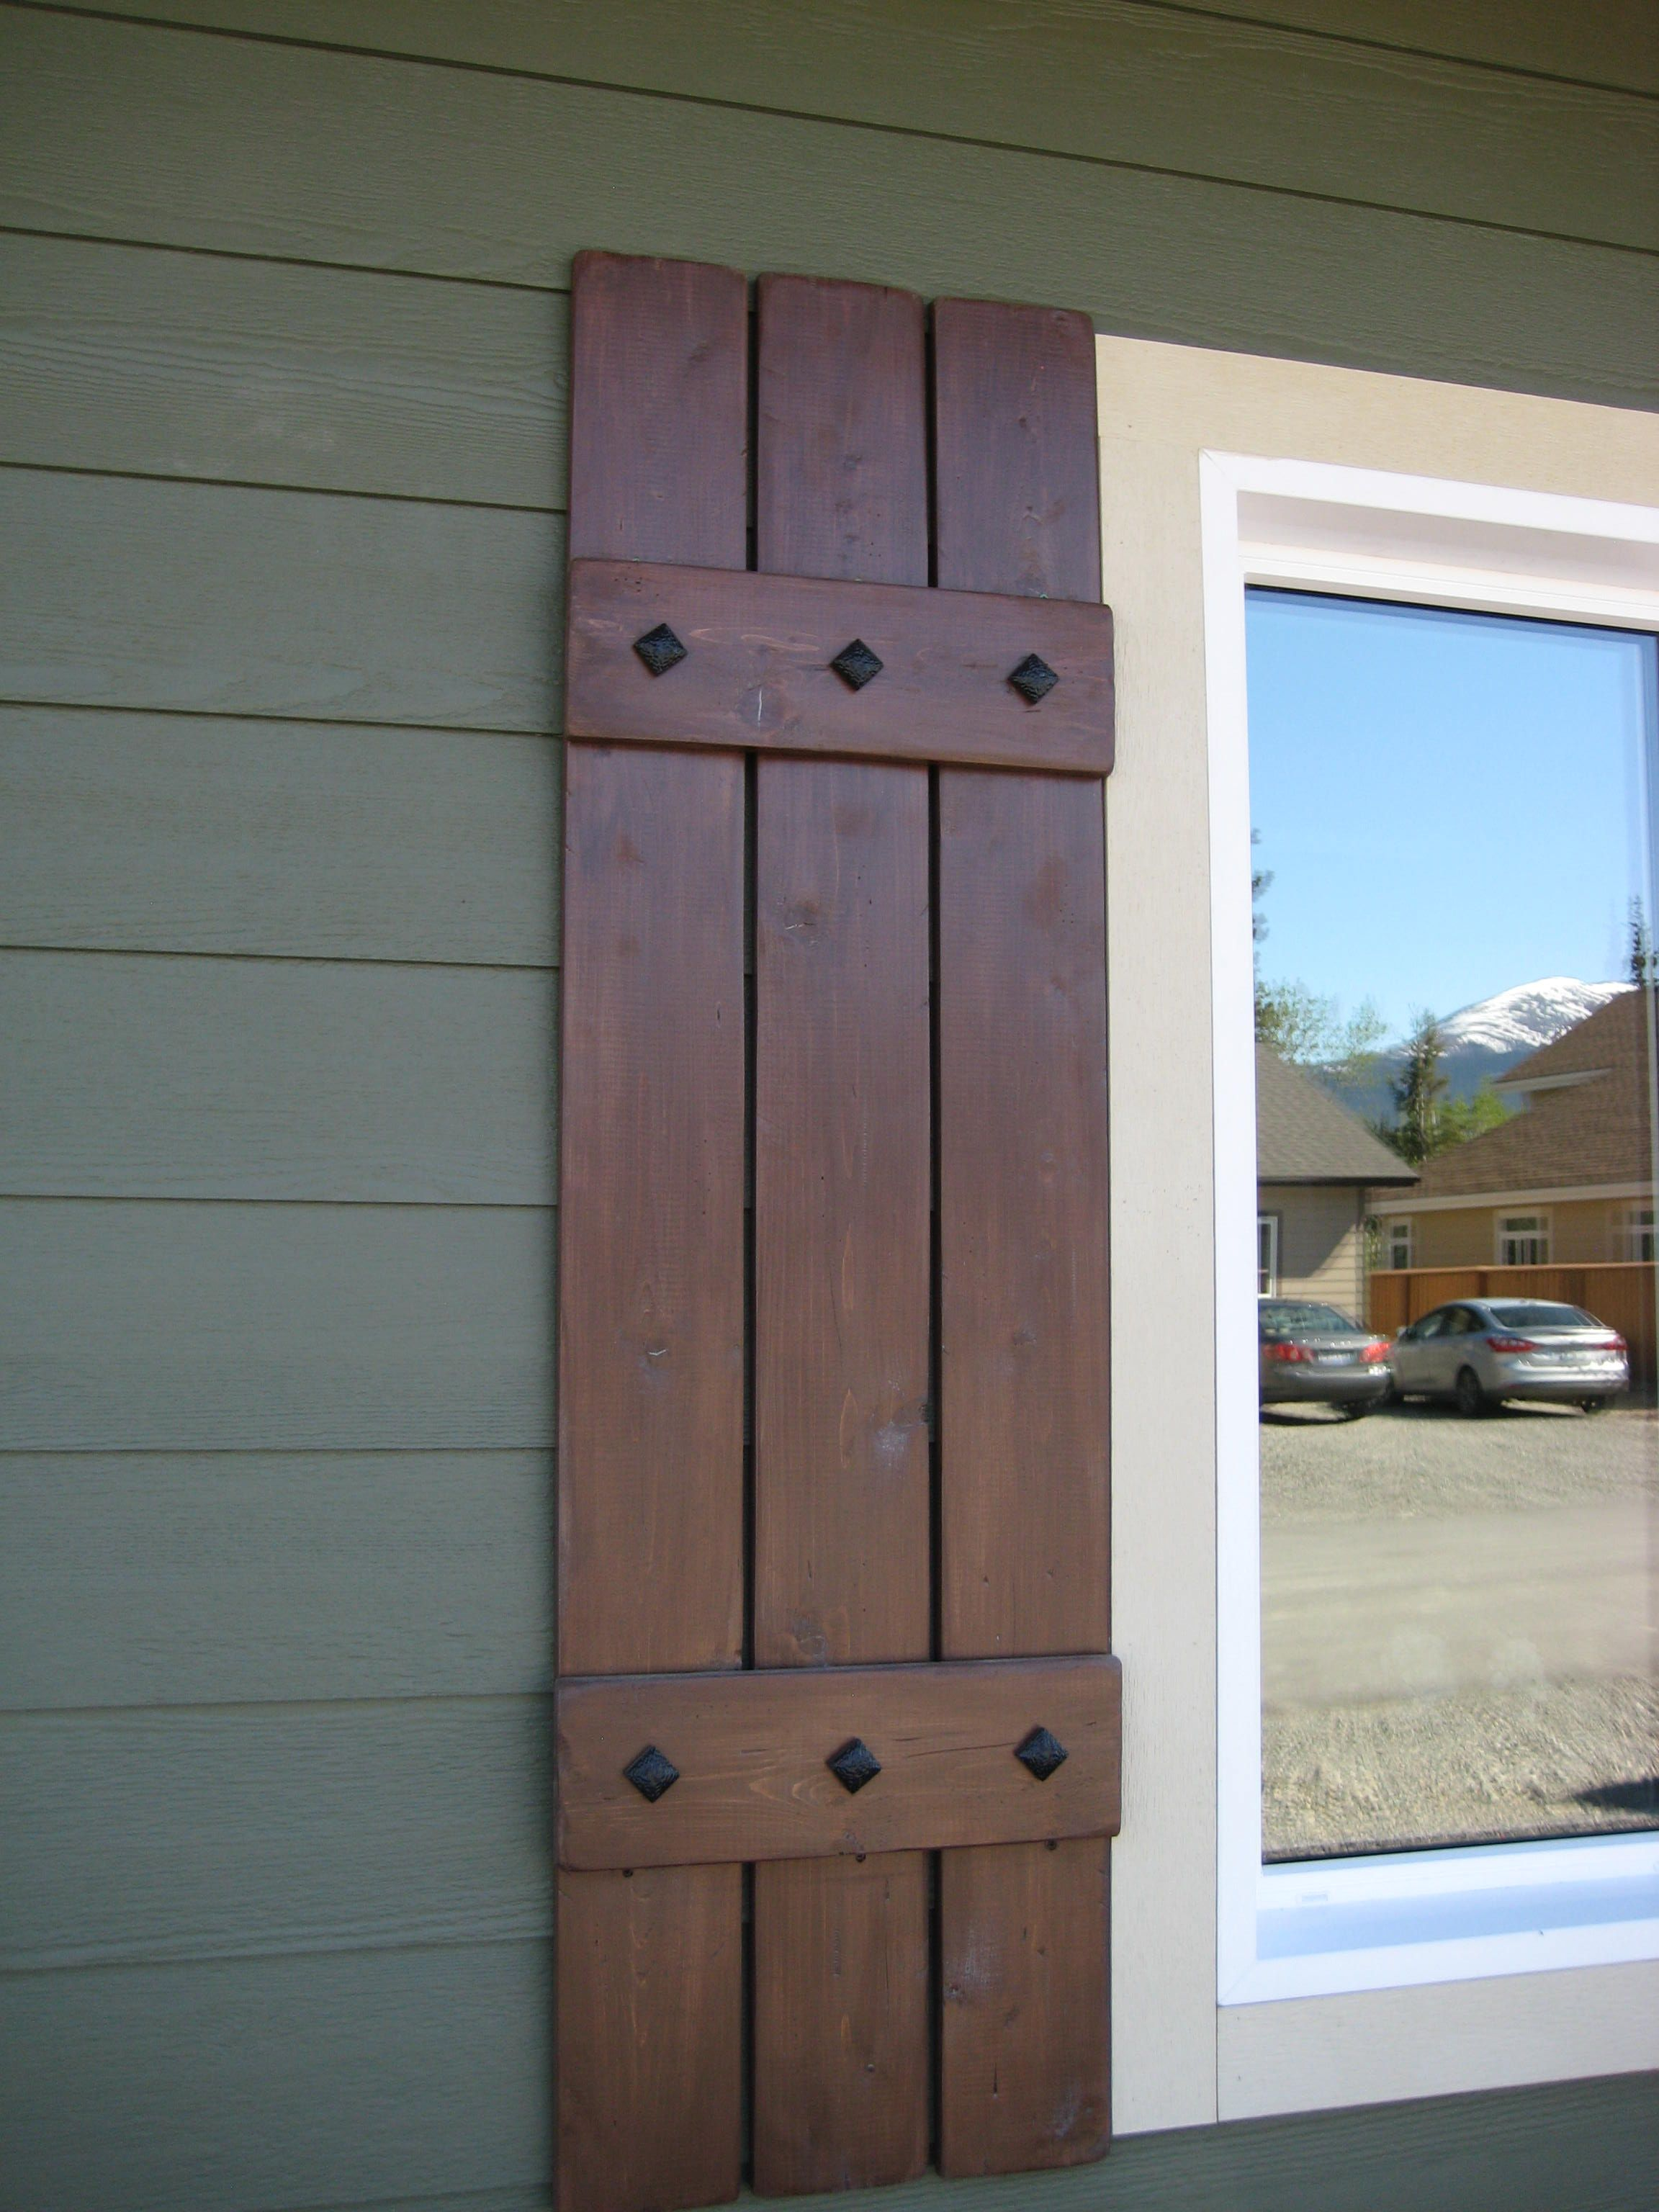 Cedar shutters jesse 39 s parents in 2019 house shutters - Exterior wooden shutters for windows ...